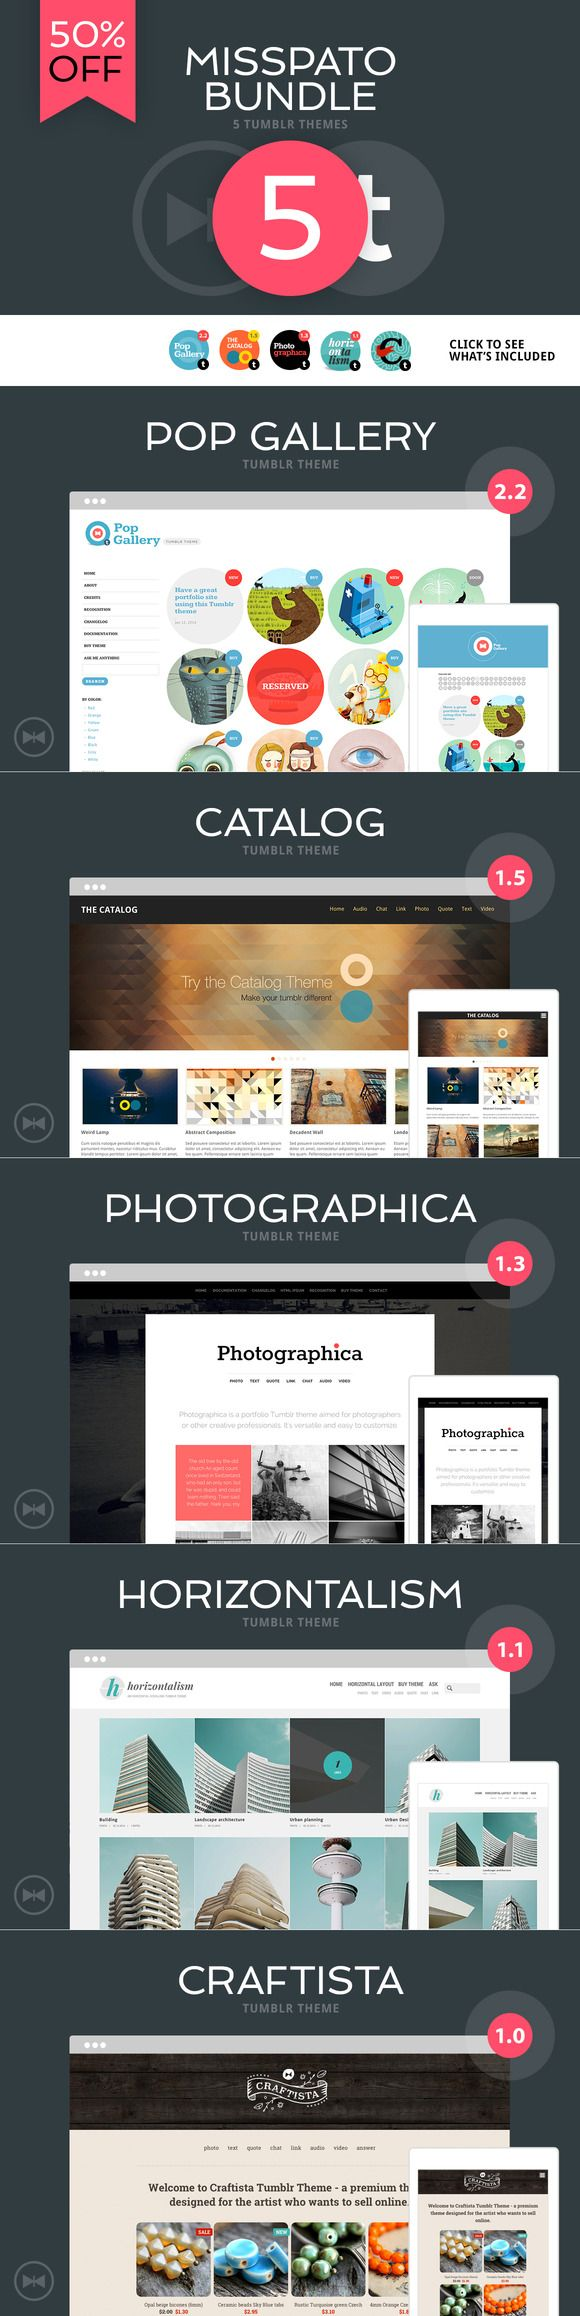 Check out MISSPATO BUNDLE - All Tumblr Themes by misspato on Creative Market